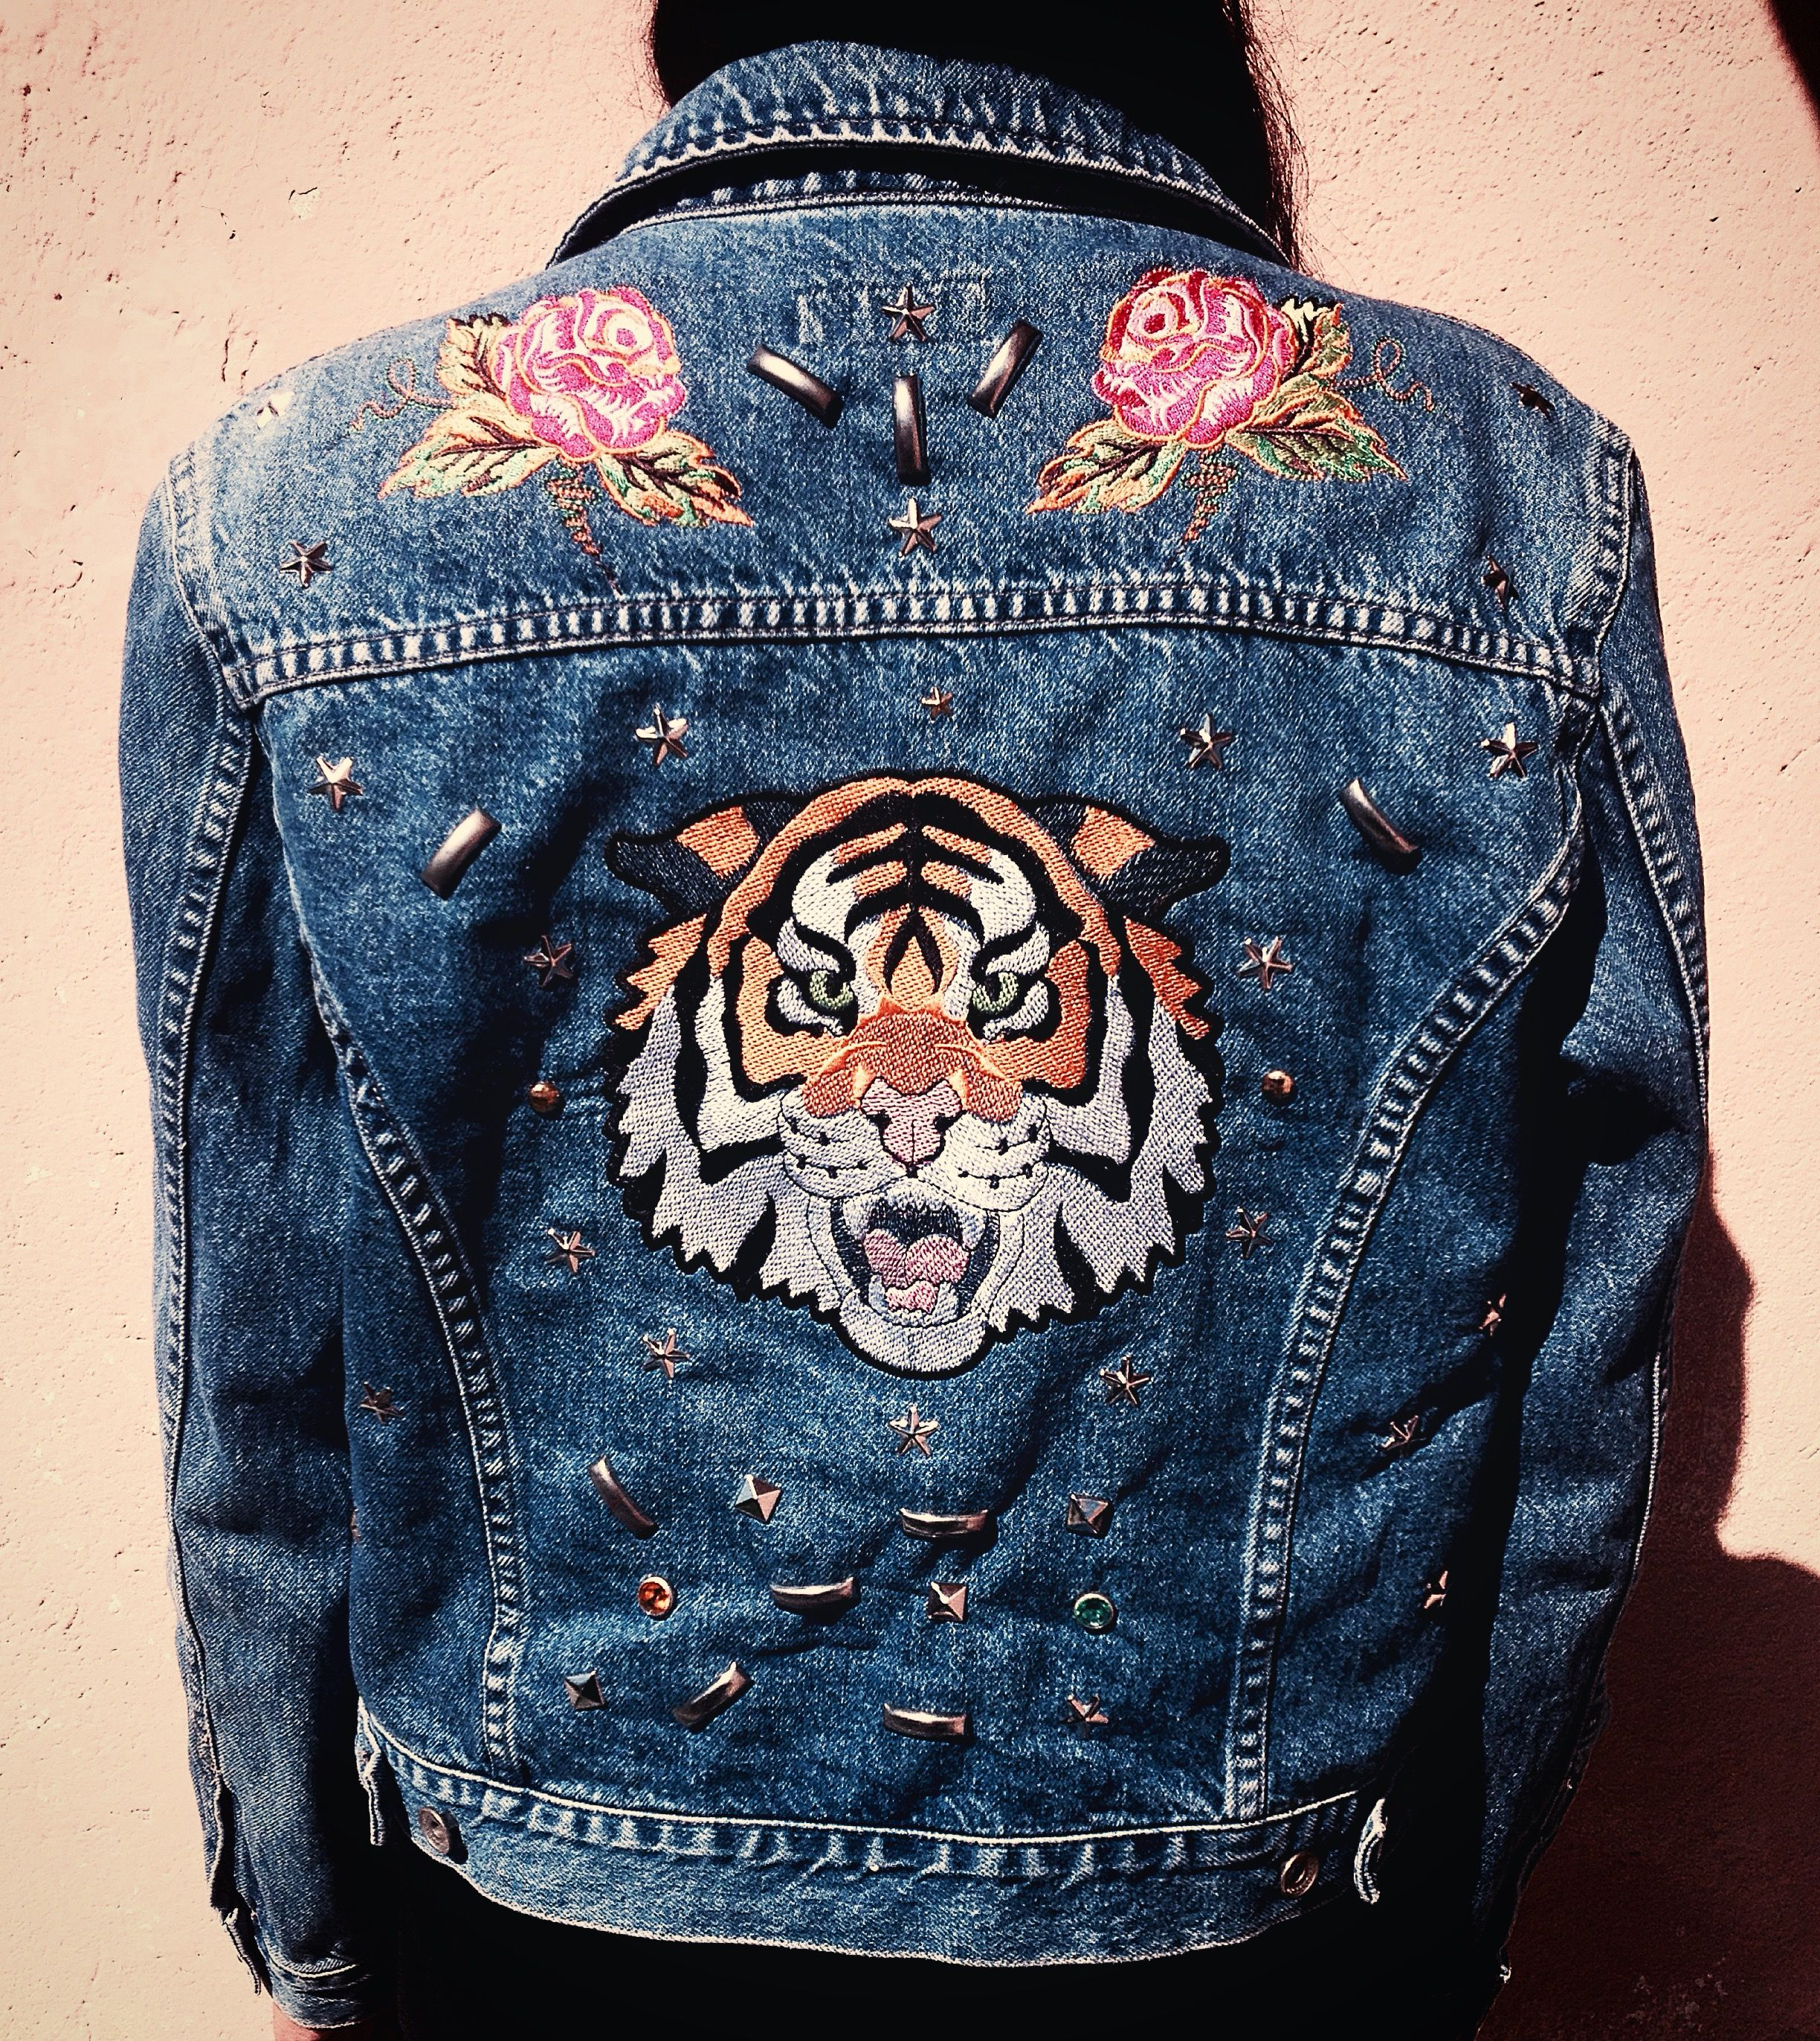 2d5516e3cbb7 Denim jacket dye studded tiger roses flowers embroidery patches Gucci idea  fall